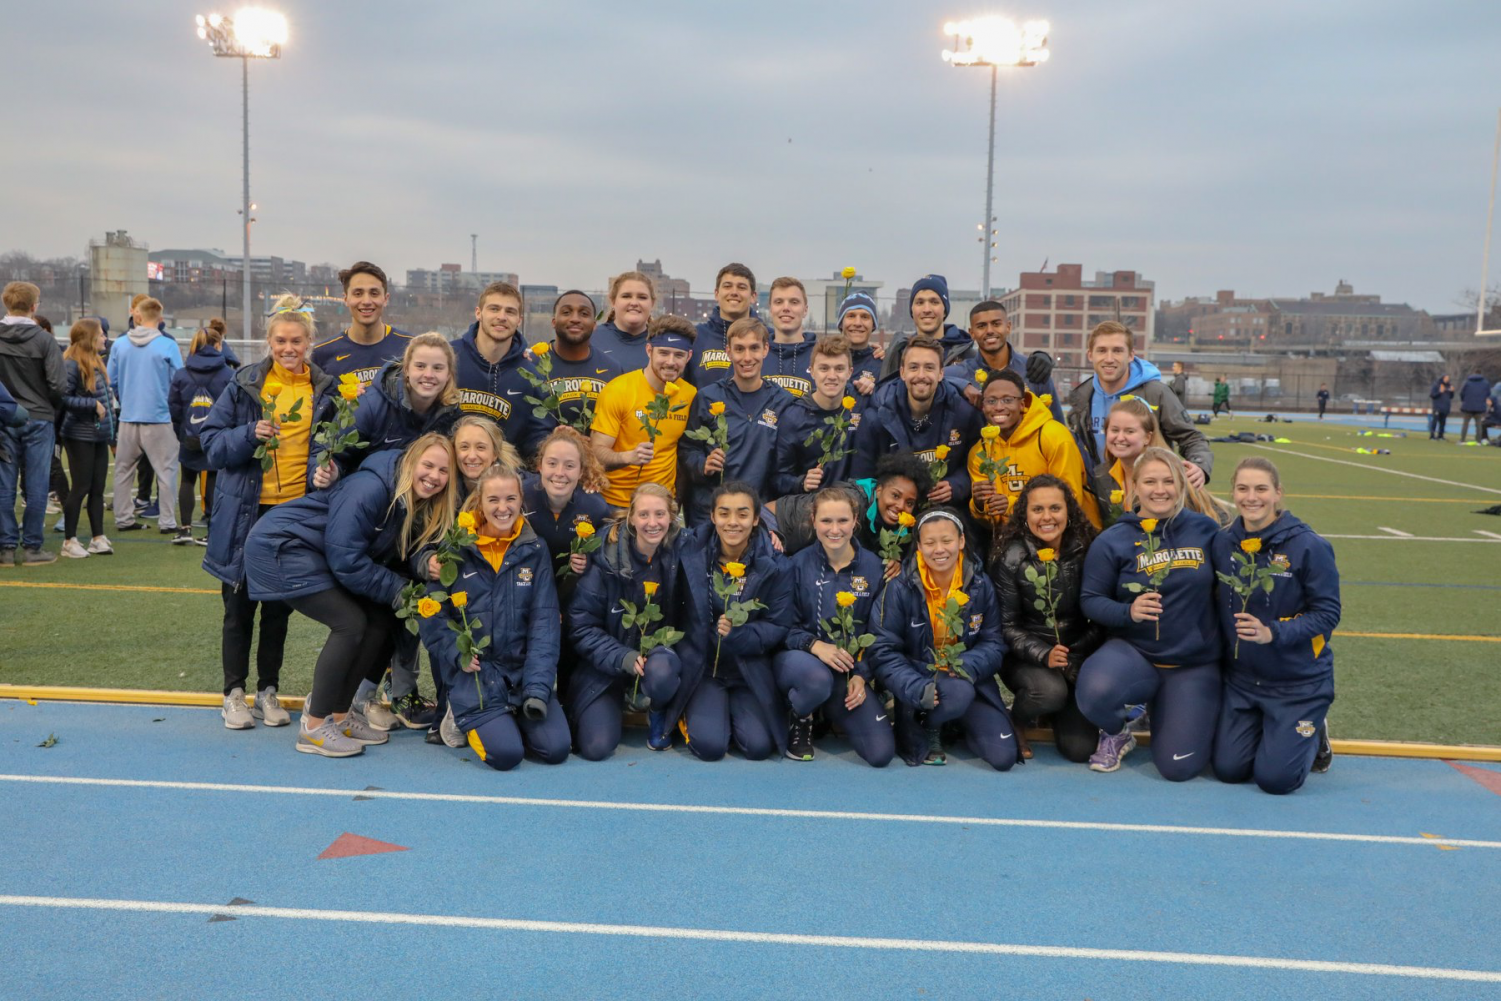 Photo courtesy of Marquette Athletics.